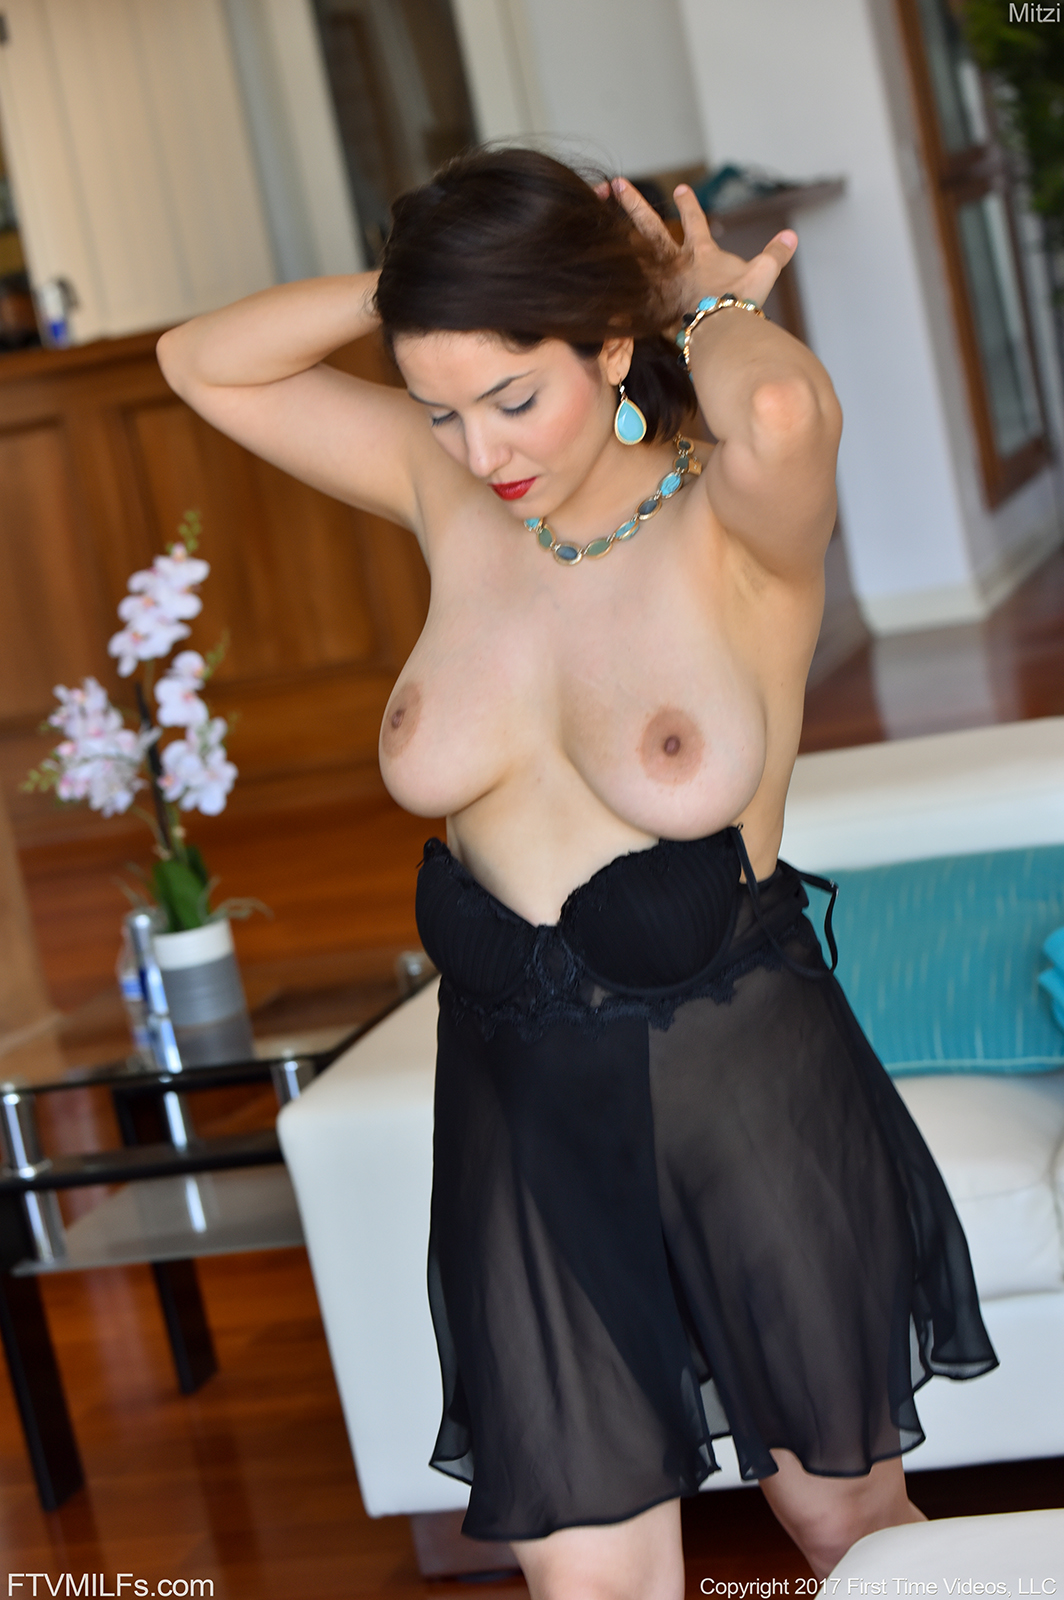 Mitzi Big Boobs Black Dress and High Heels for FTV Milfs